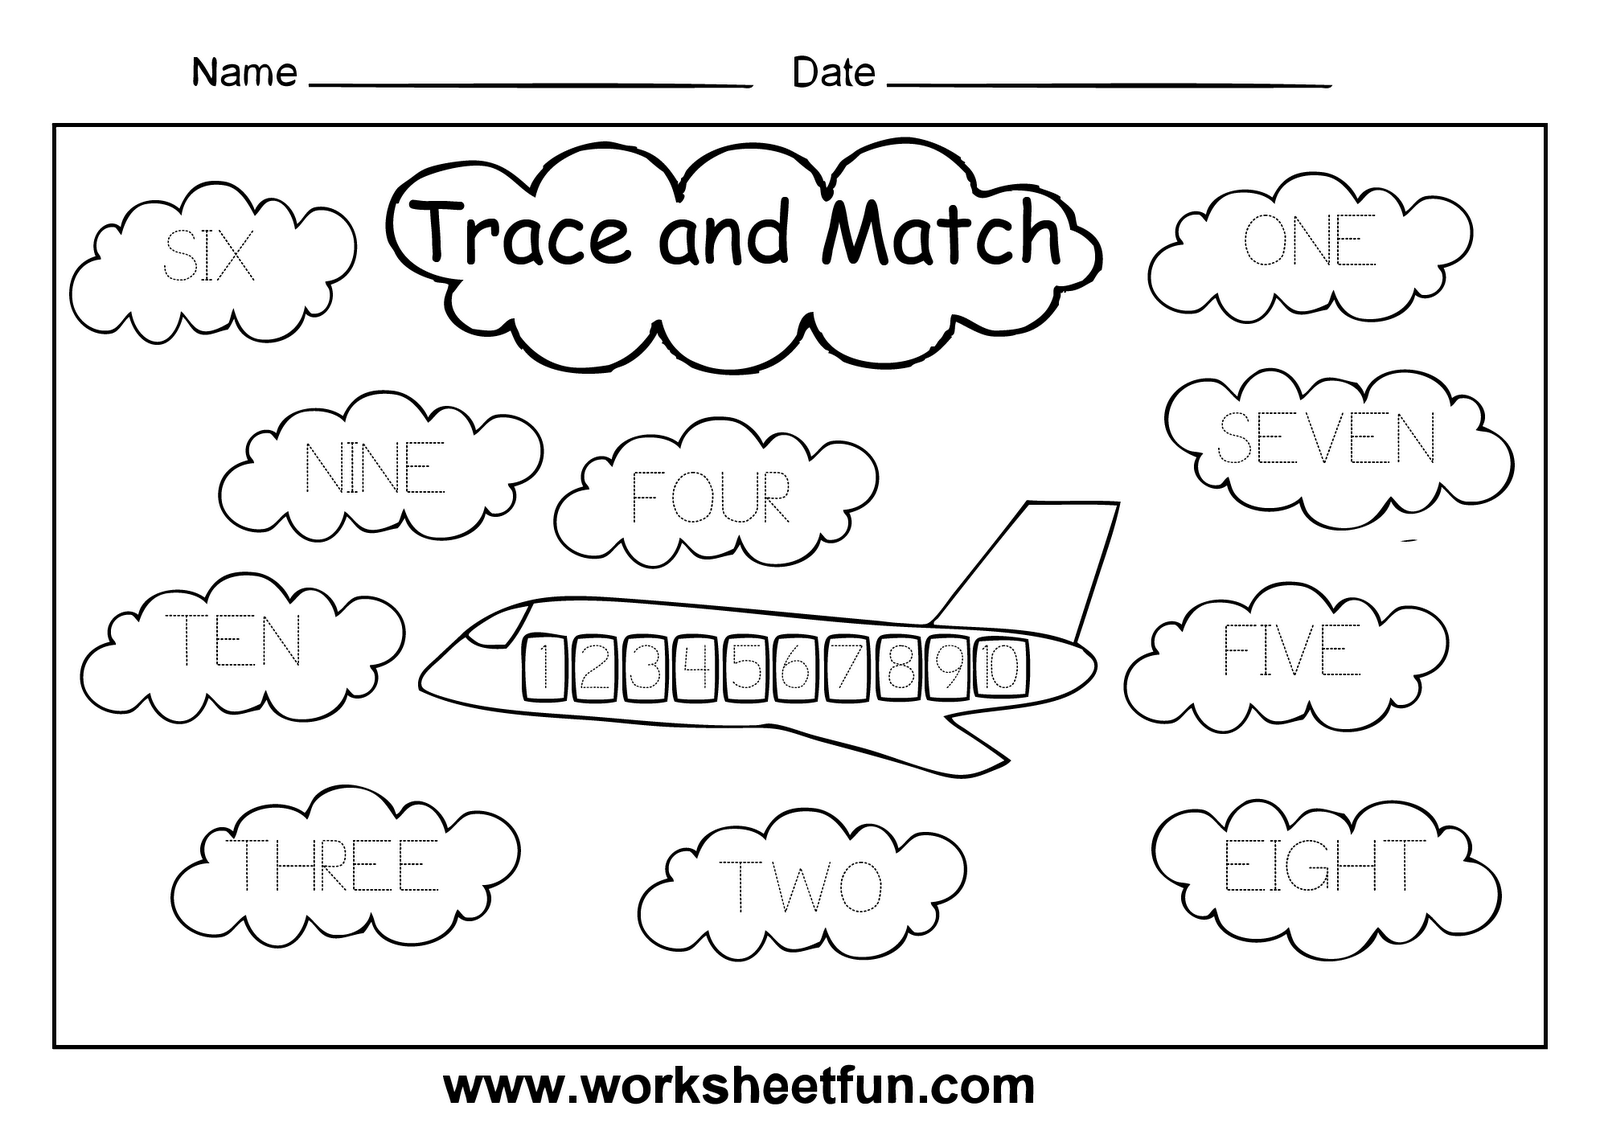 Worksheet Numbers 1 10 Worksheets For All